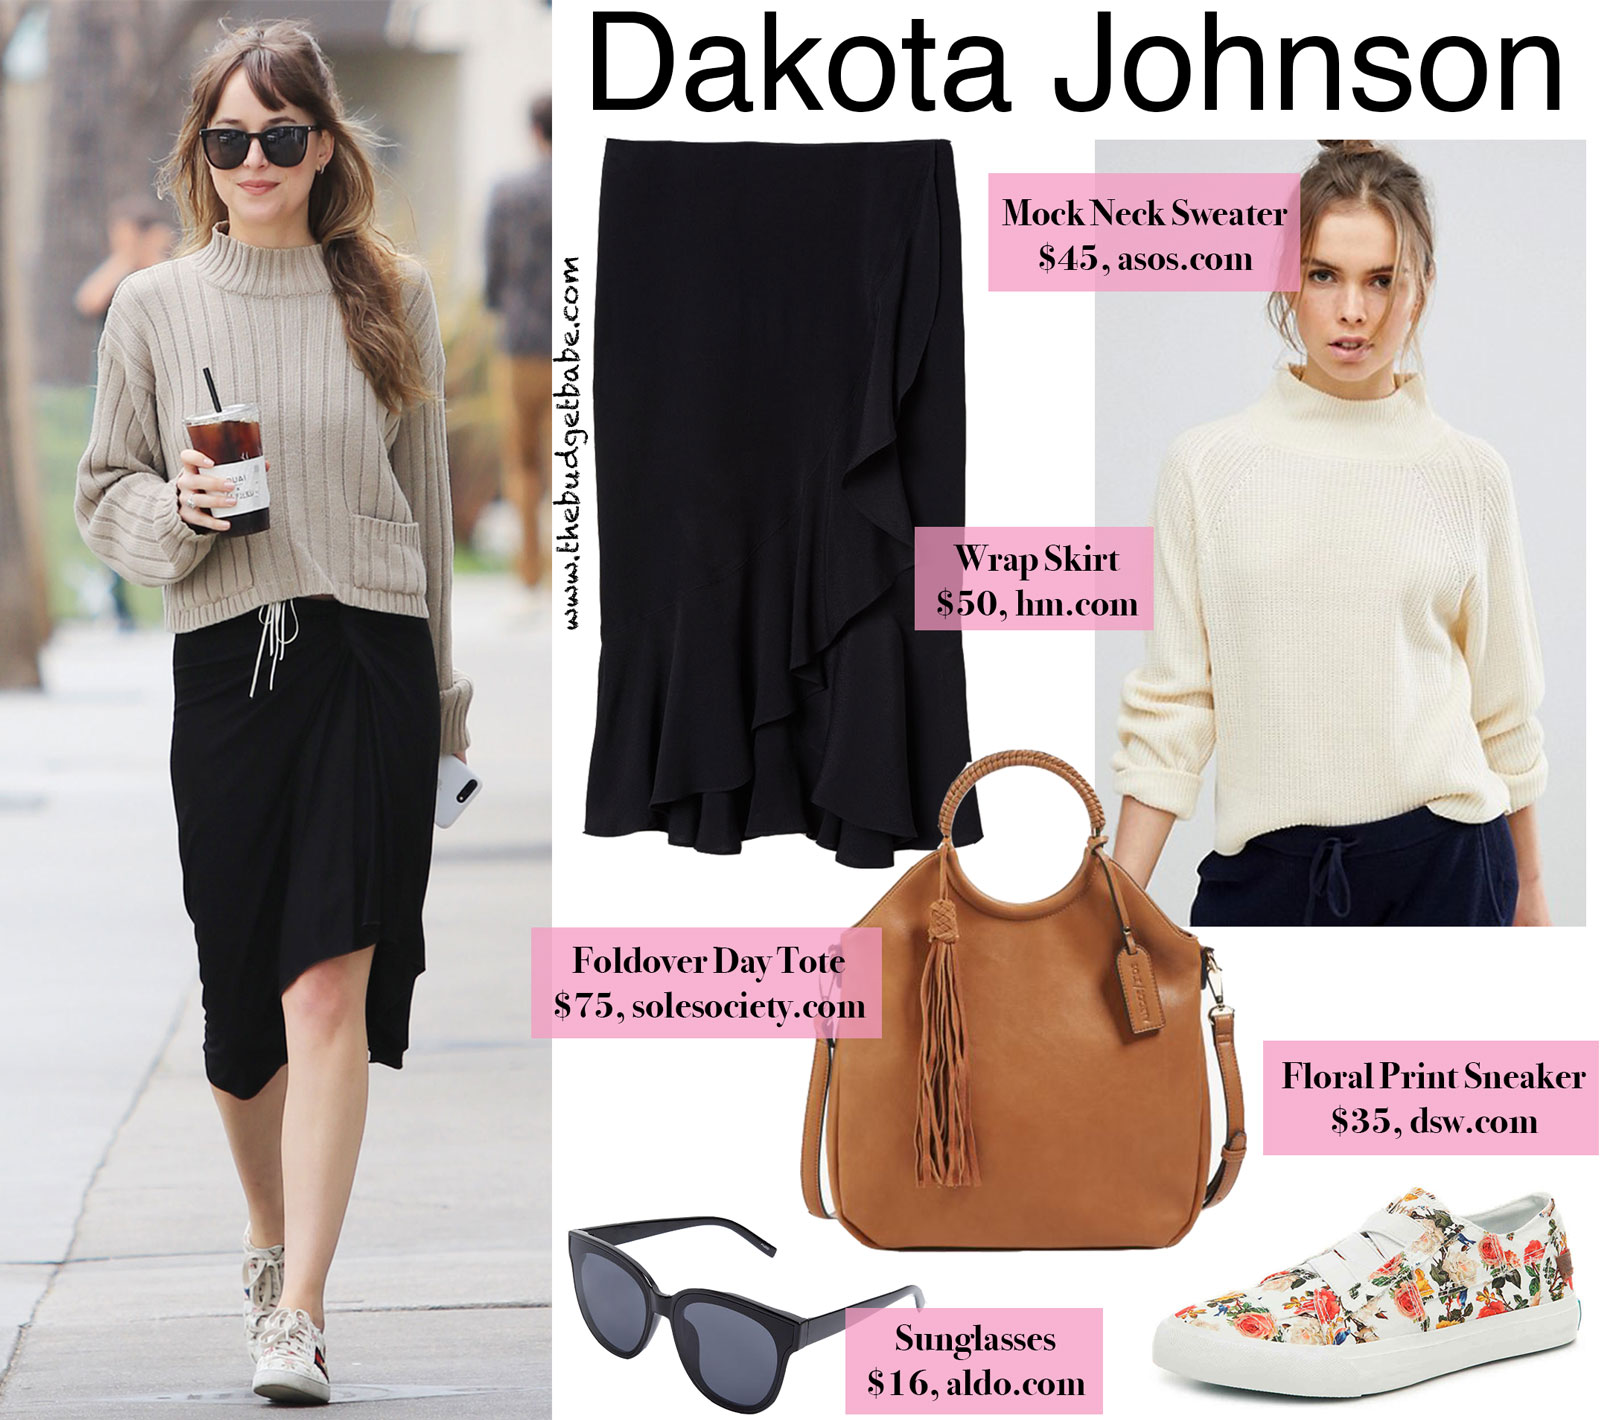 Dakota Johnson Mock Neck Sweater and Gucci Floral Sneakers Look for Less